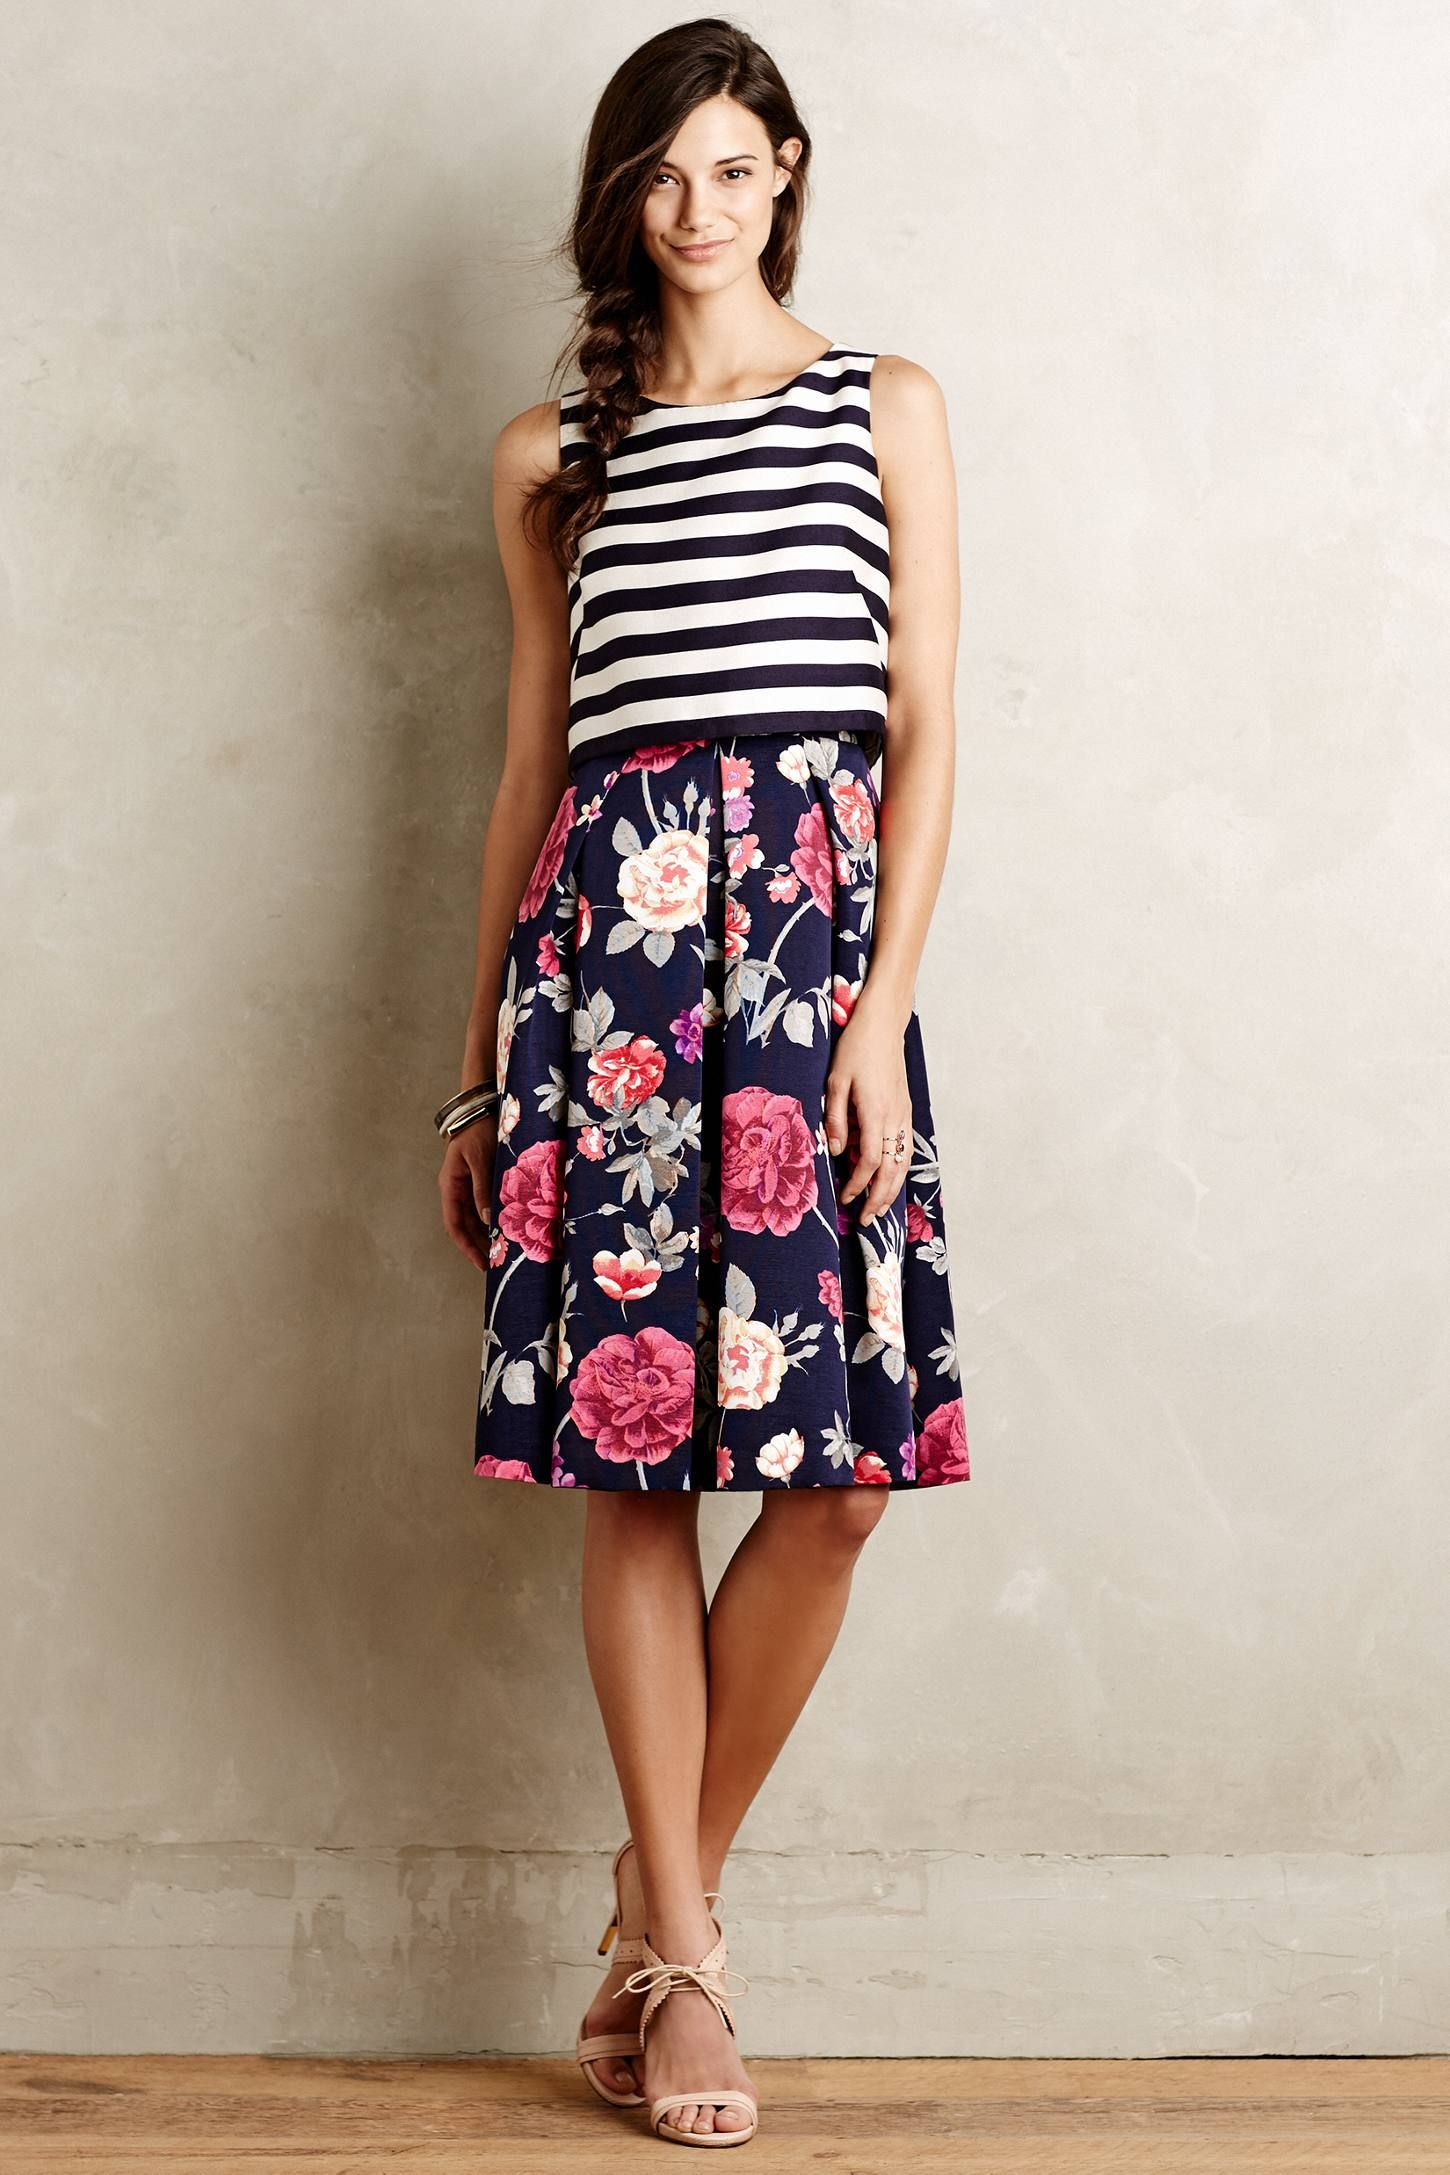 be78108dfe33 Split-Print Dress - anthropologie.com Love the stripes with the floral print